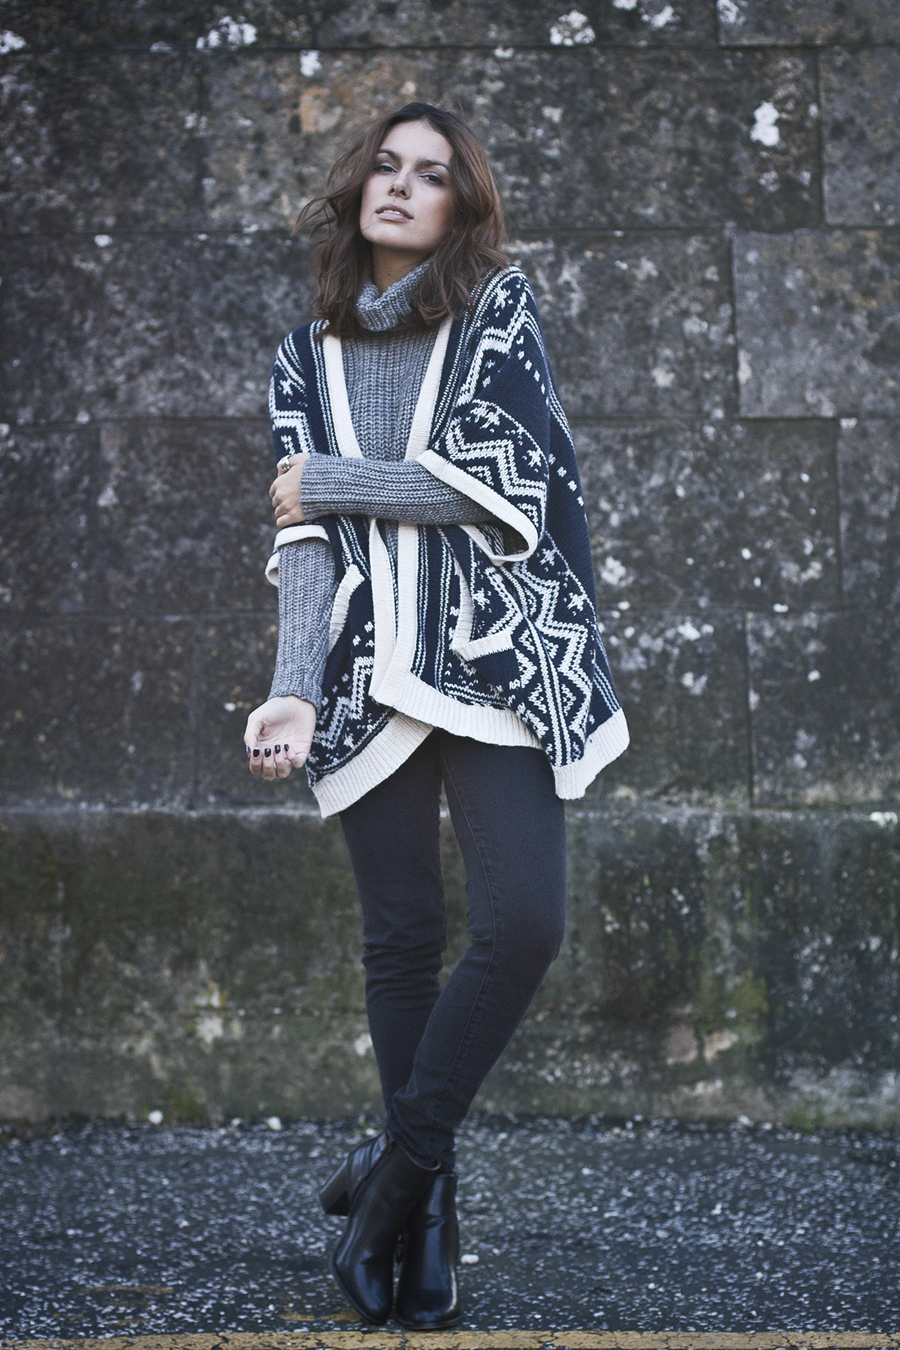 Mafalda Castro is wearing dark blue and white ethnic printed cape from Springfield